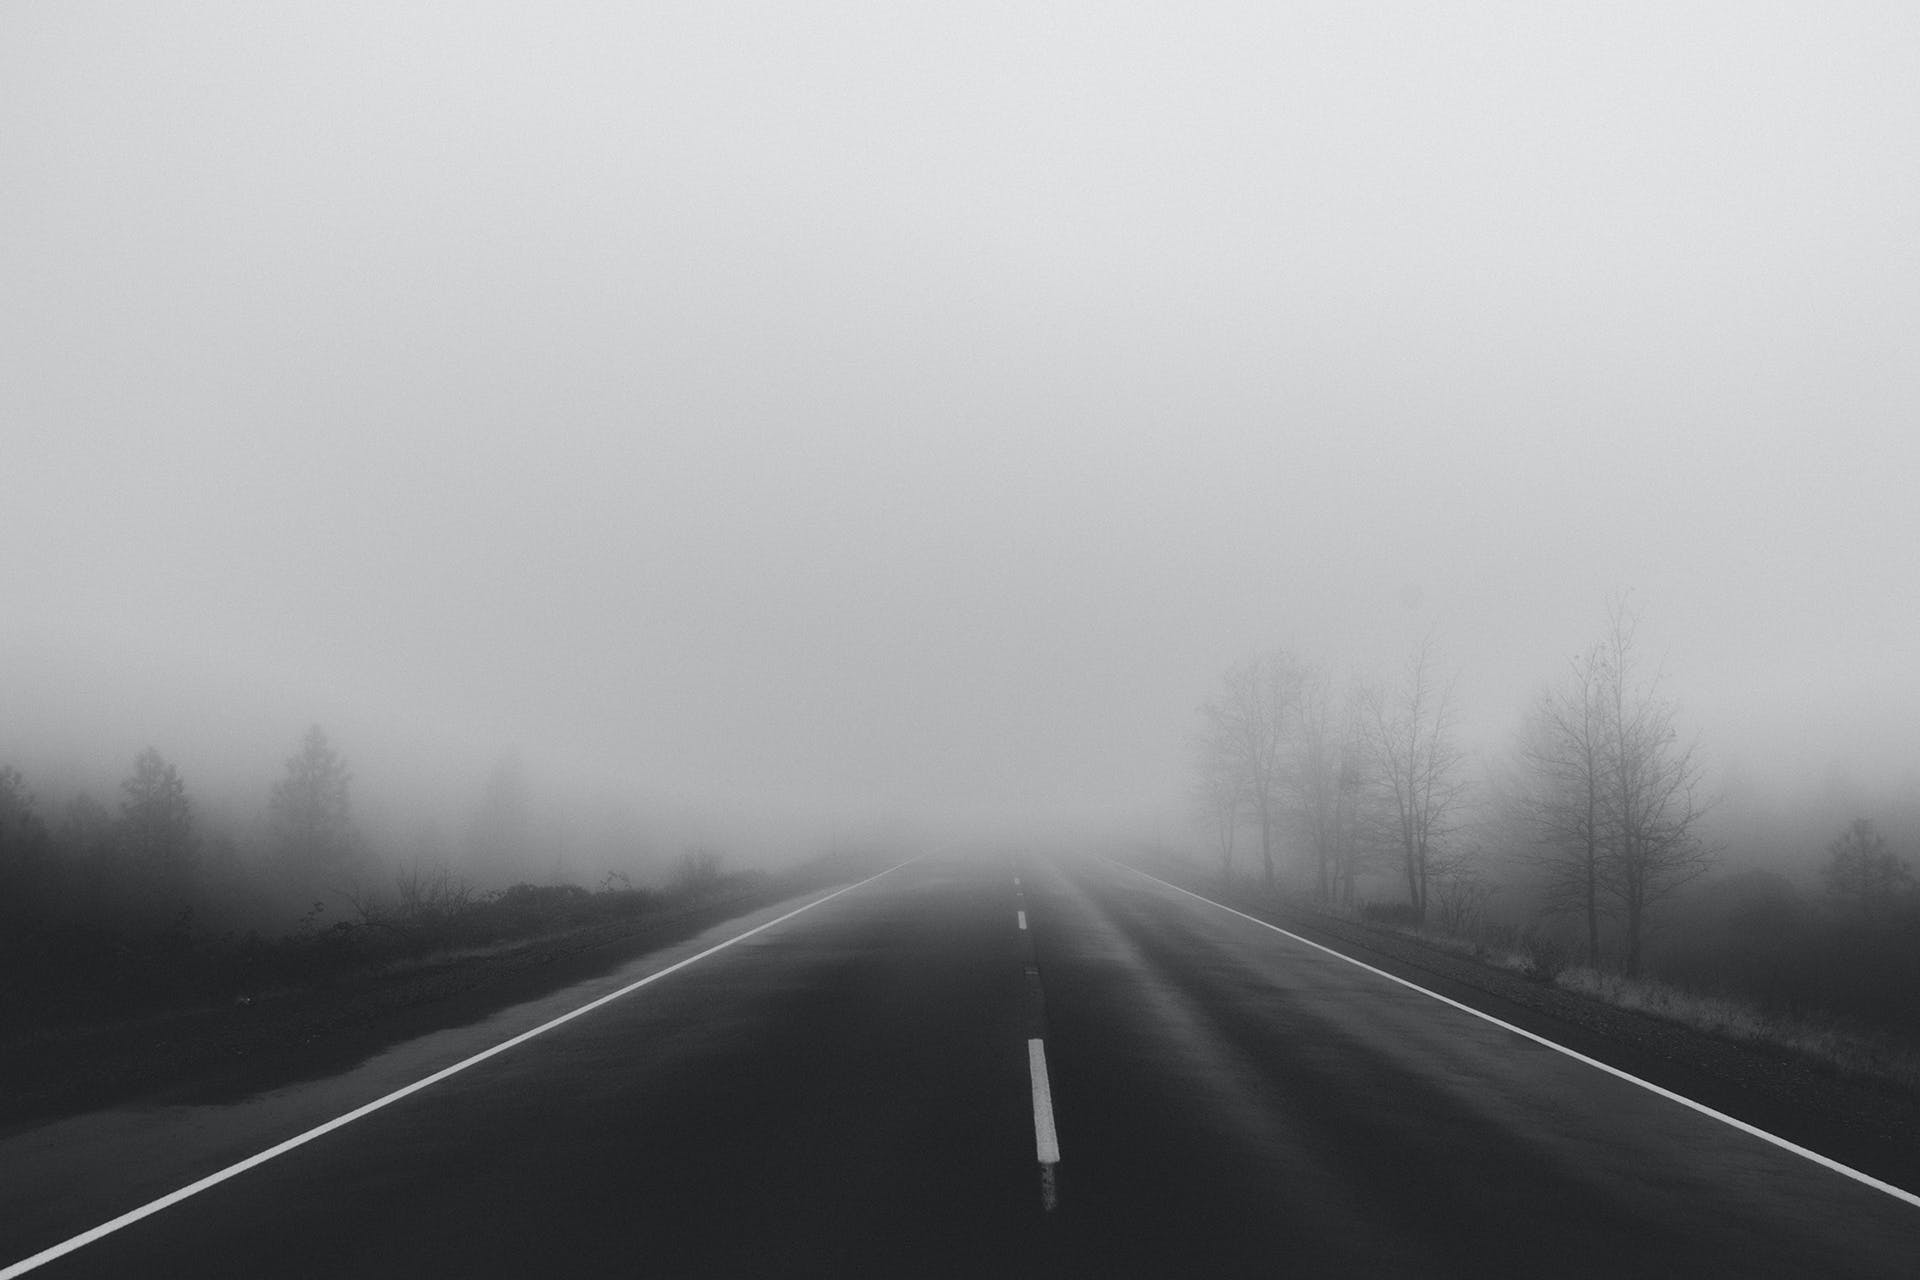 Free stock photo of road, fog, foggy, mist